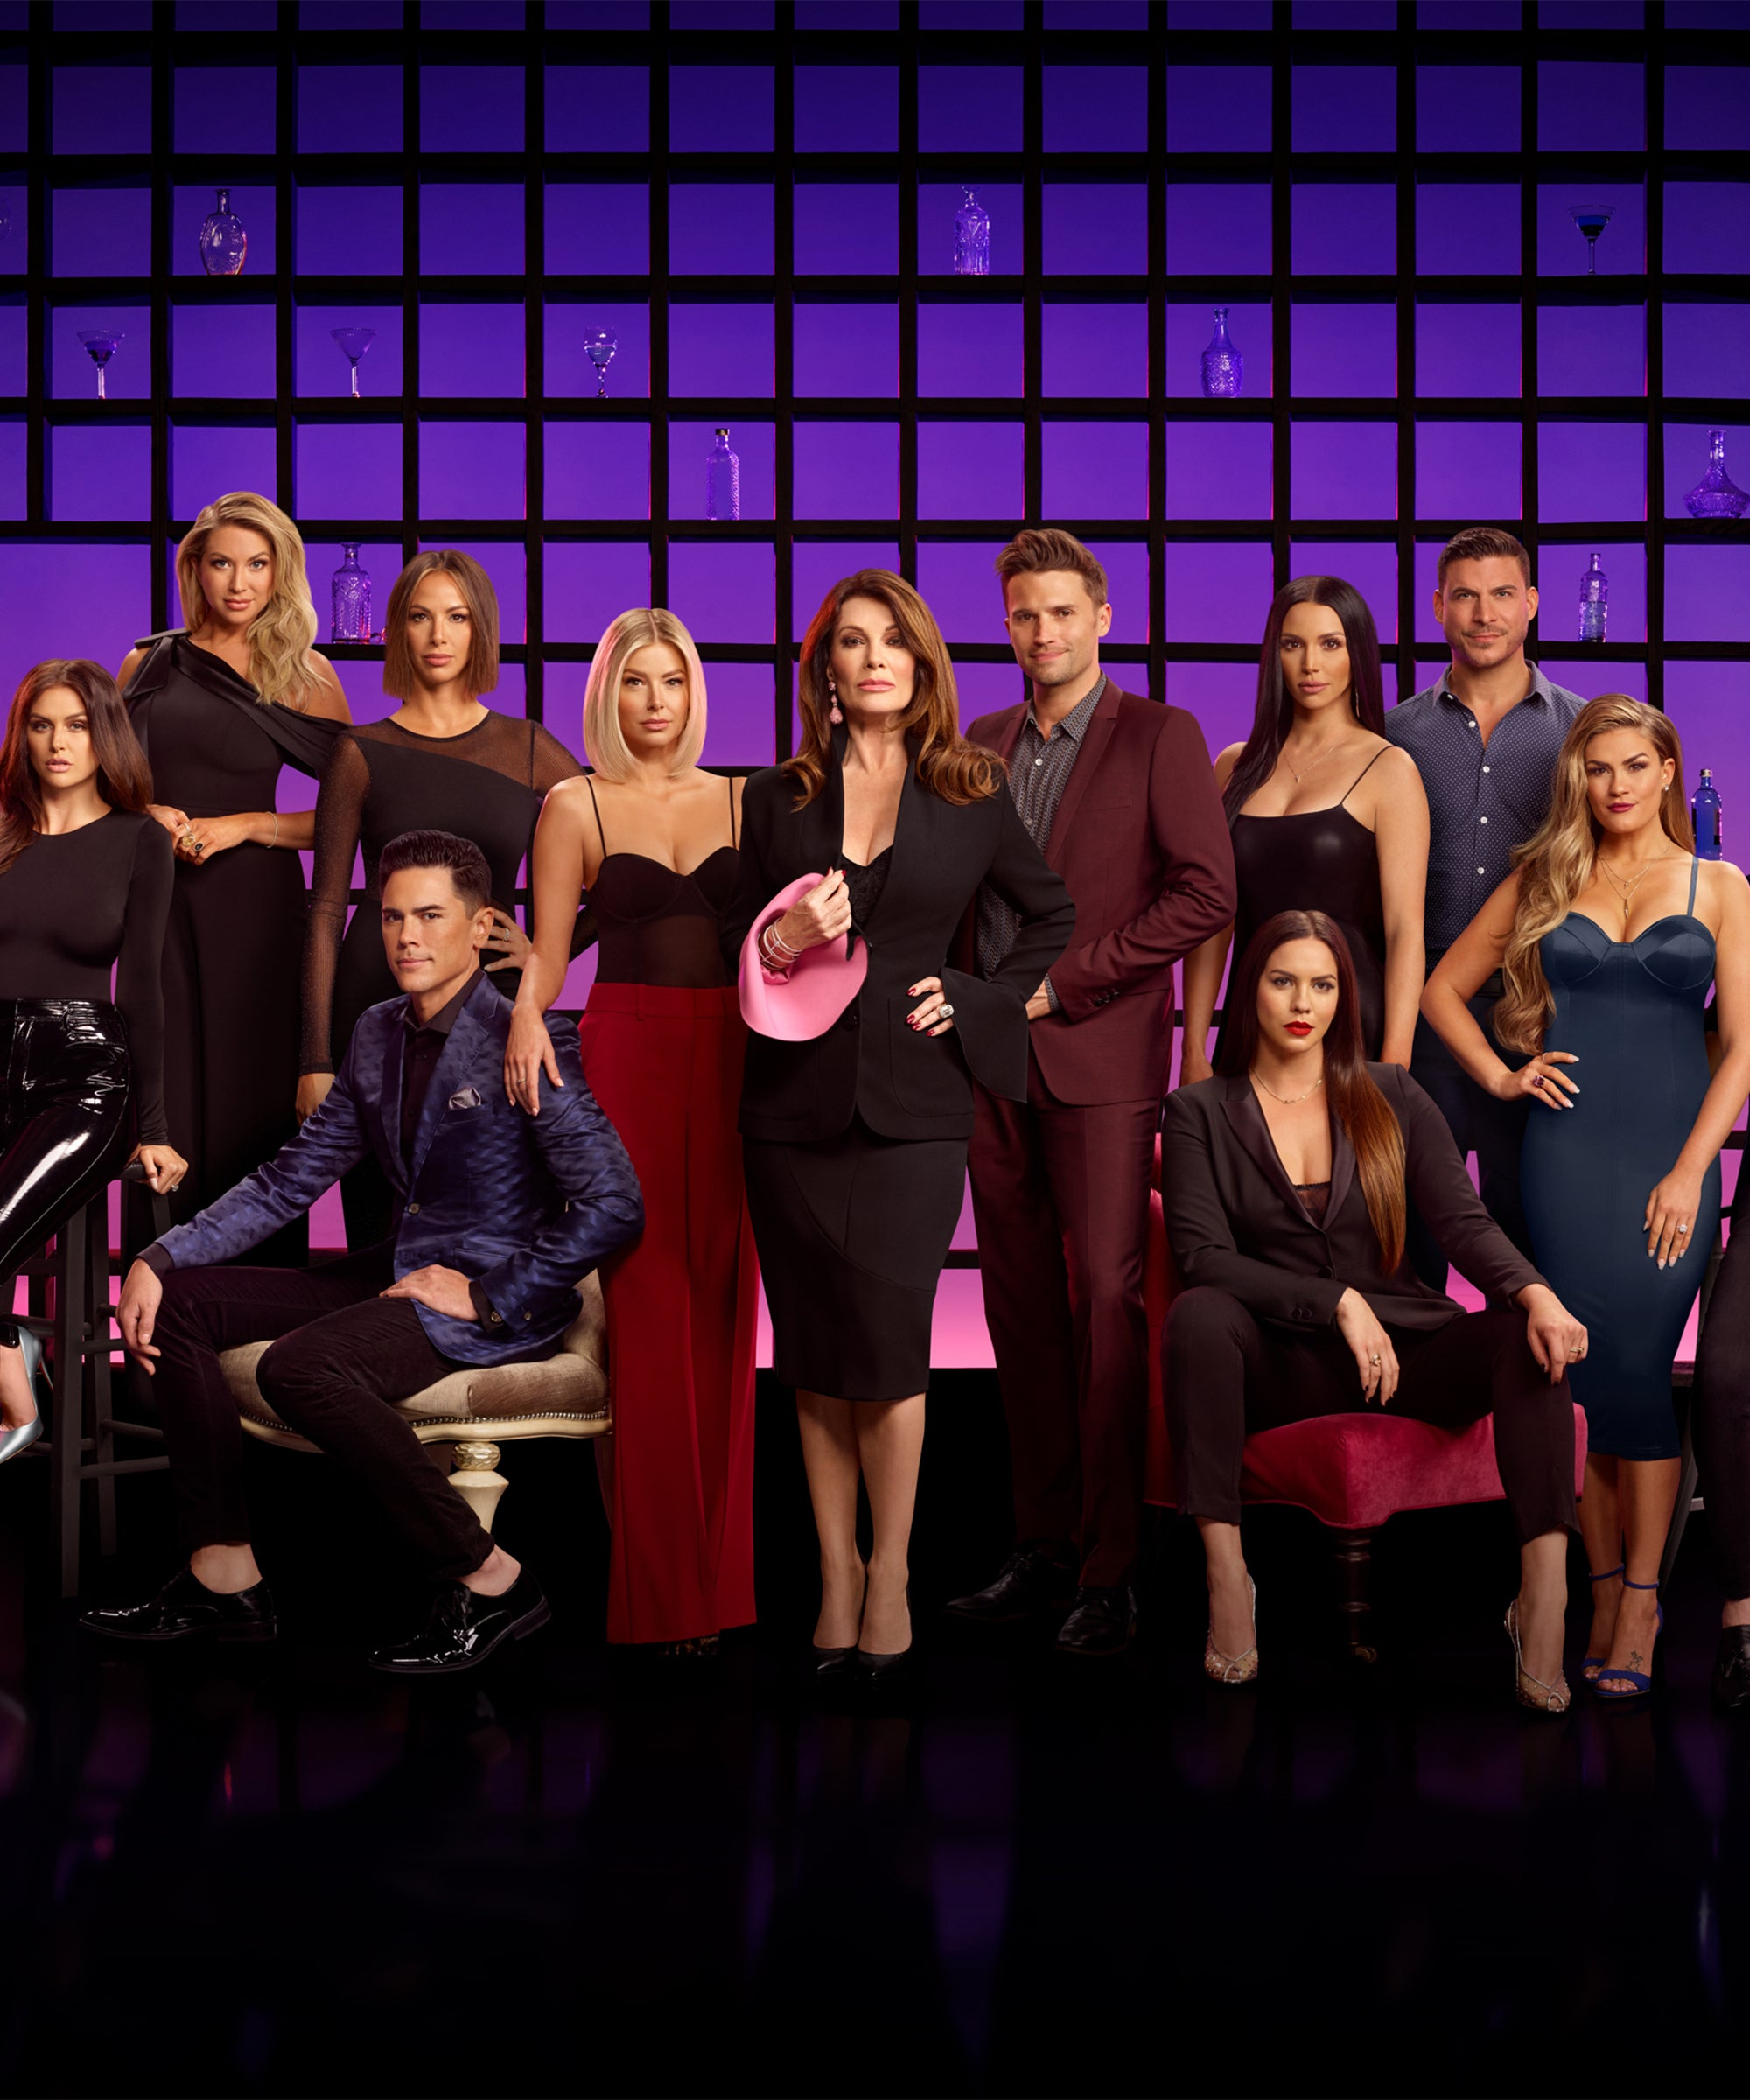 Face It, Vanderpump Rules Is Basically Our Friends